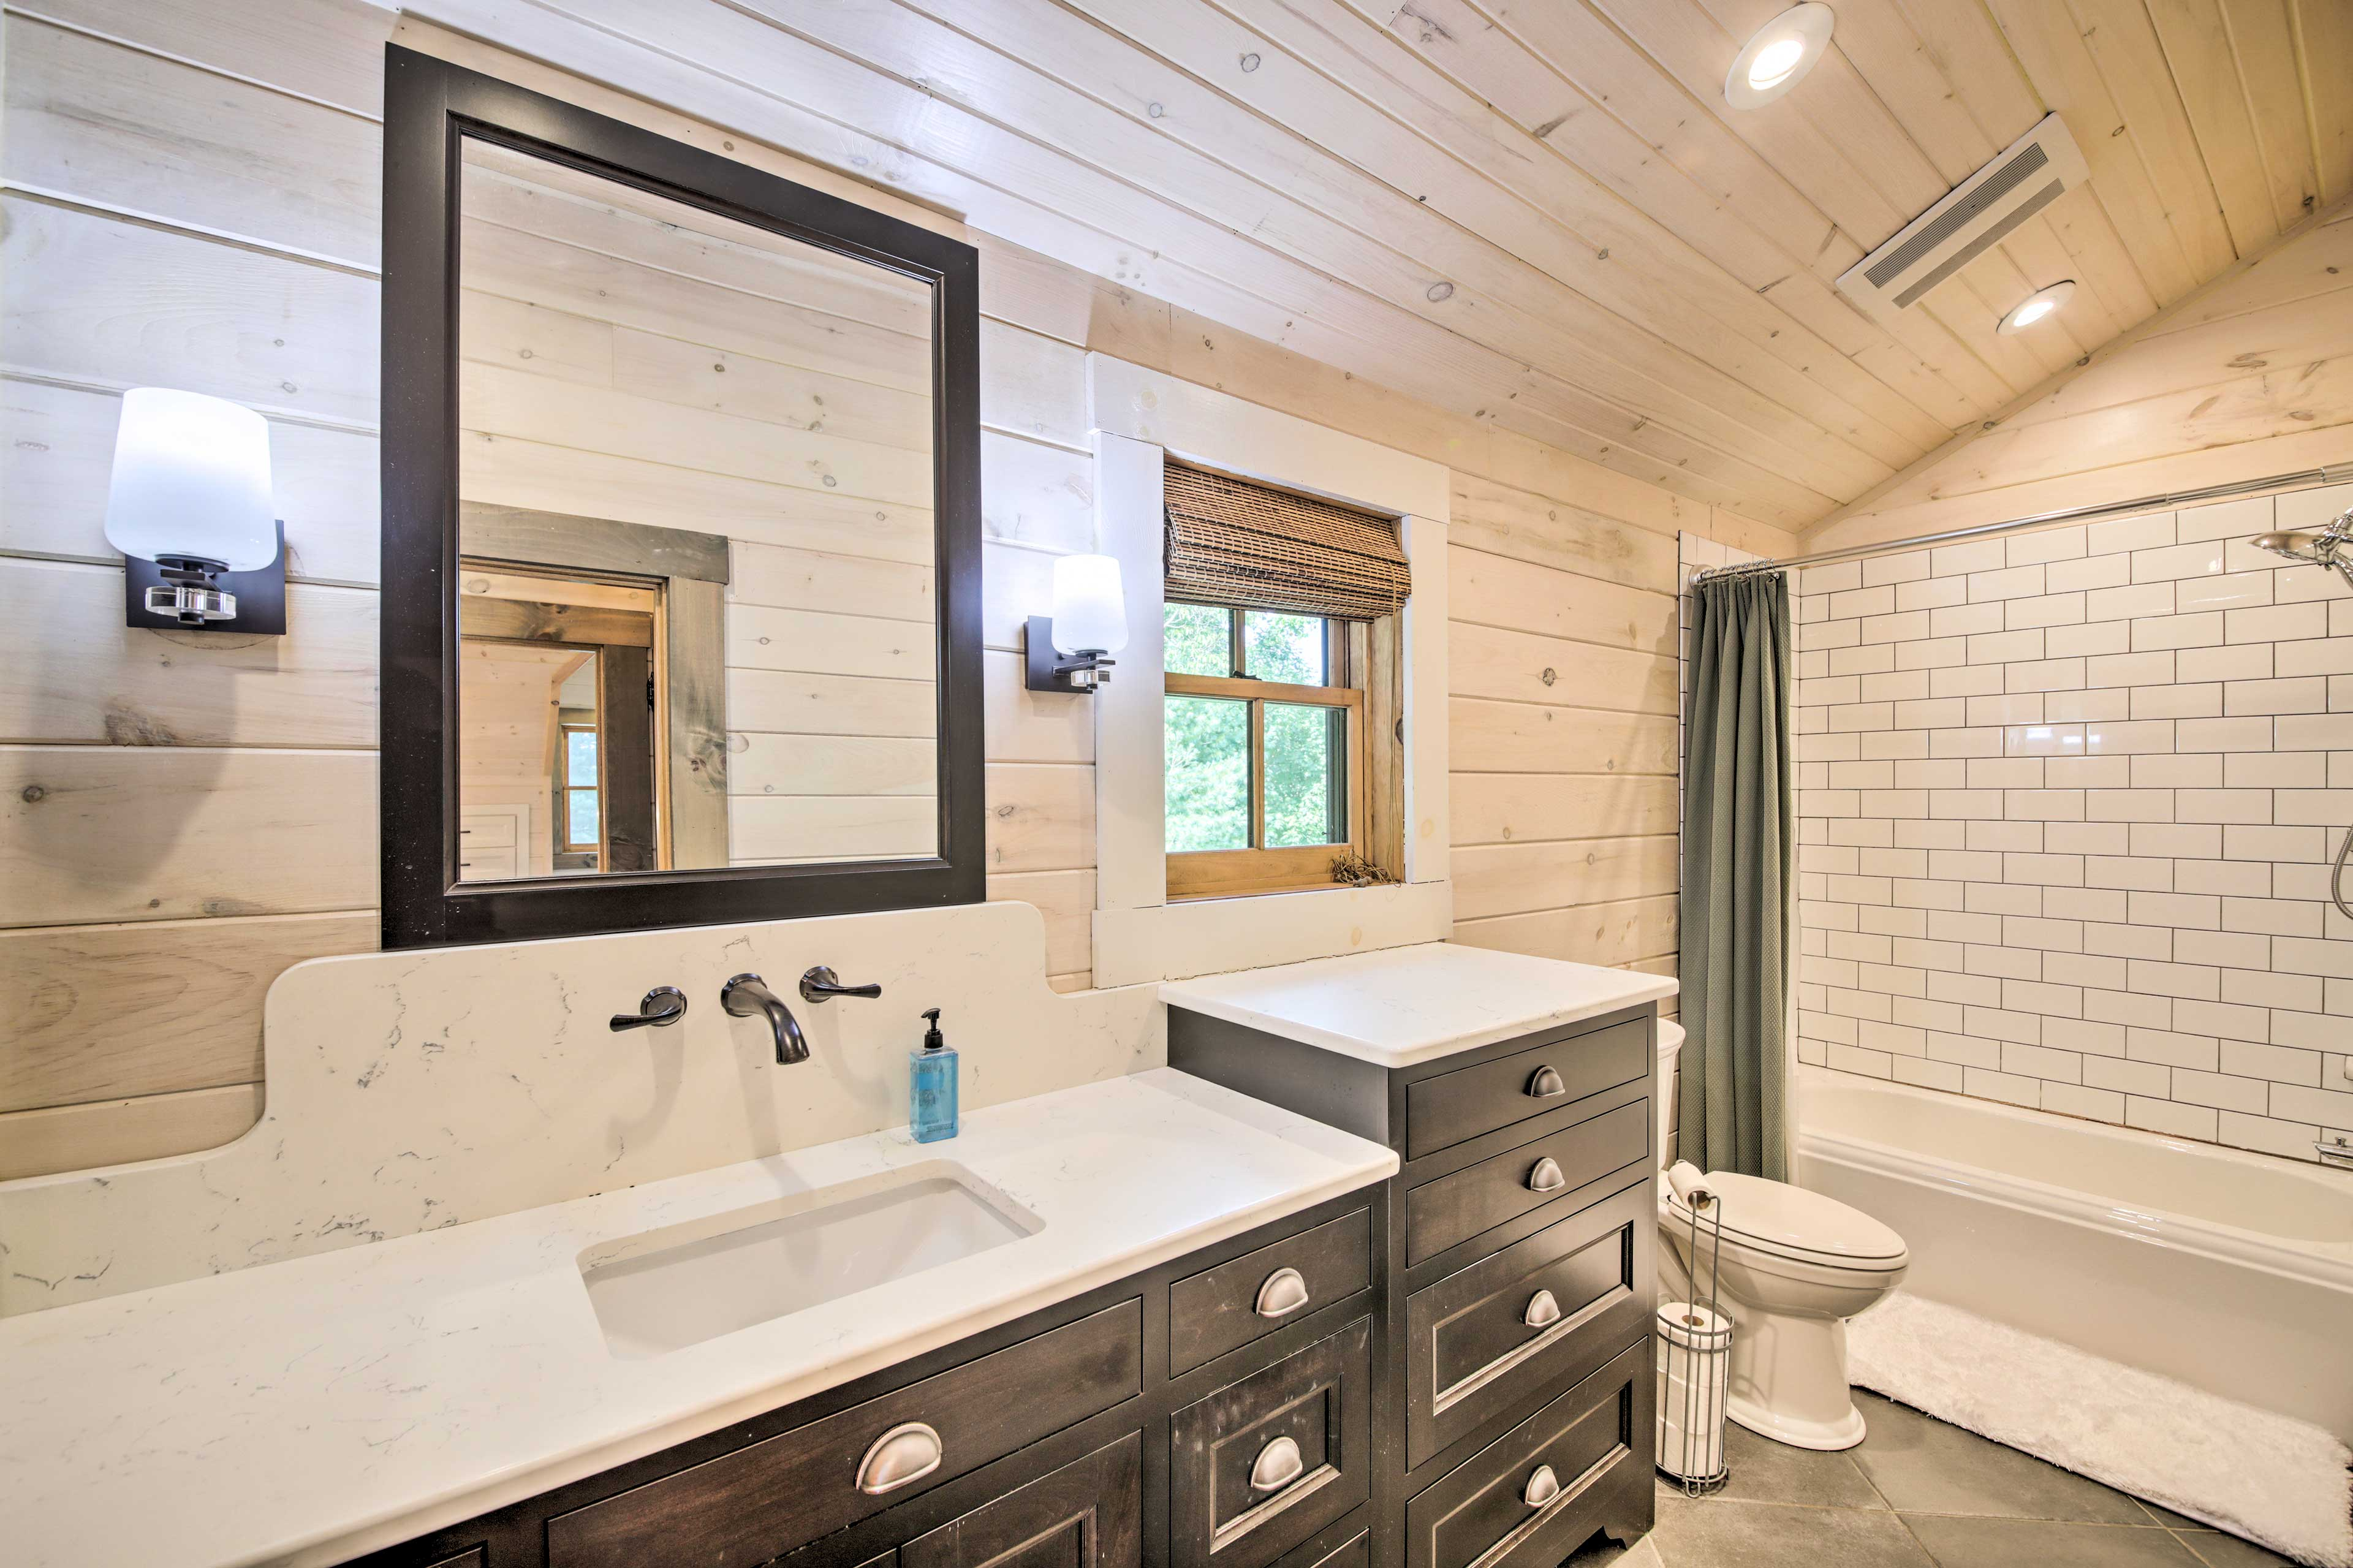 Get ready with ease in the en-suite bathroom.